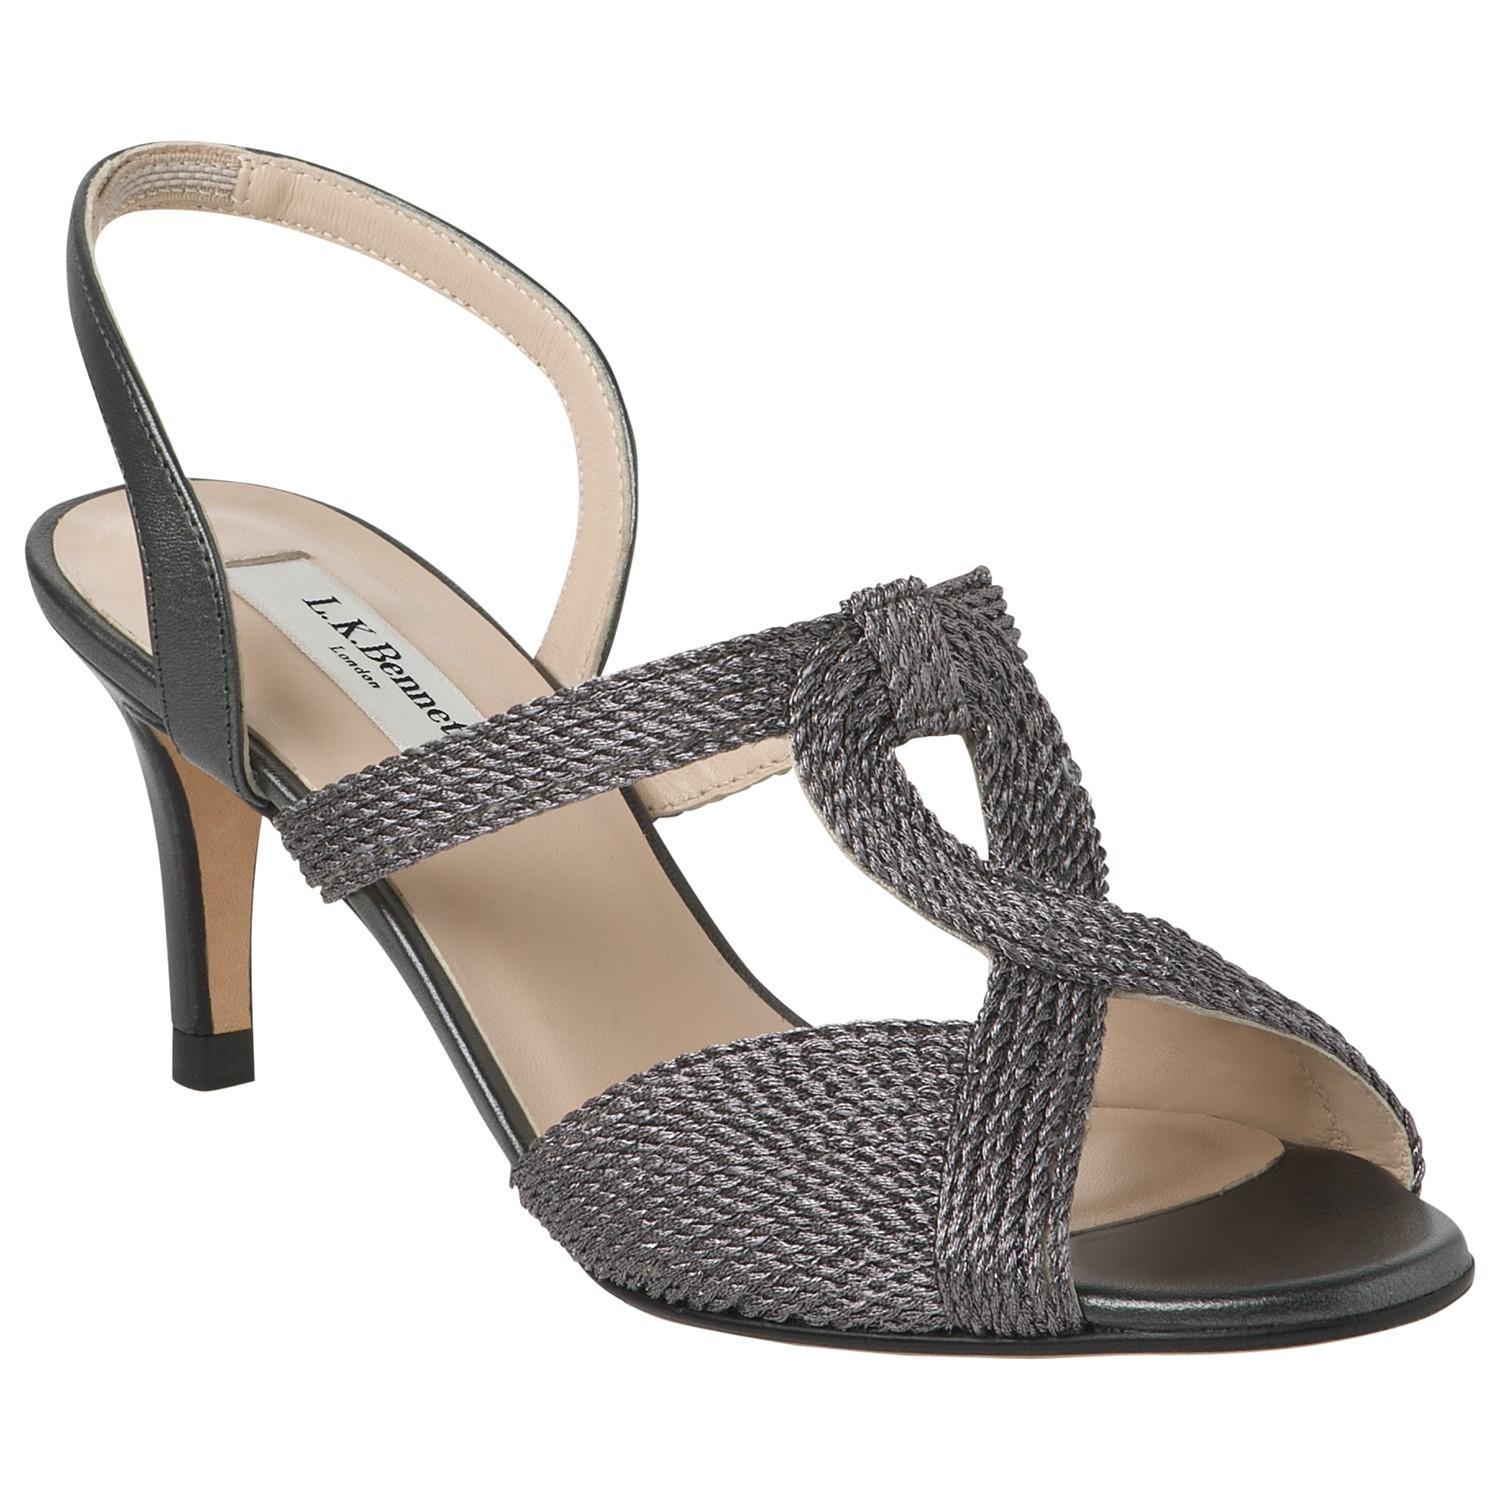 pewter wedding shoes l k pewter losari rope sandals size us 8 regular 6496